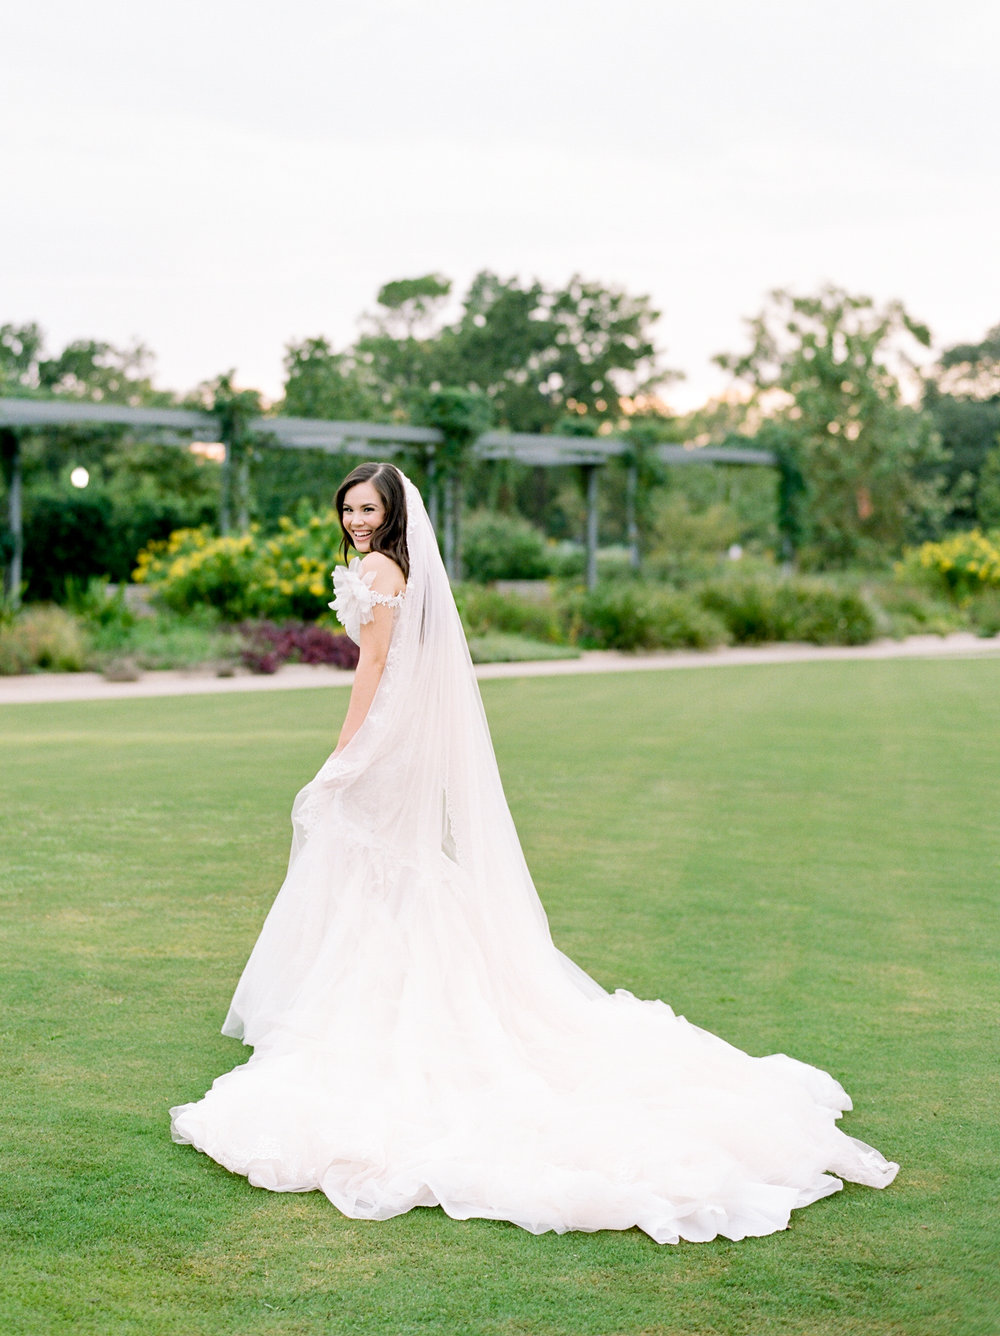 Fine-Art-Film-Houston-Wedding-Photographer-Best-Top-Luxury-Texas-Austin-Dallas-Destination-Dana-Fernandez-Photography-Portrait-Bridals-McGovern-Centennial-Gardens-8.jpg